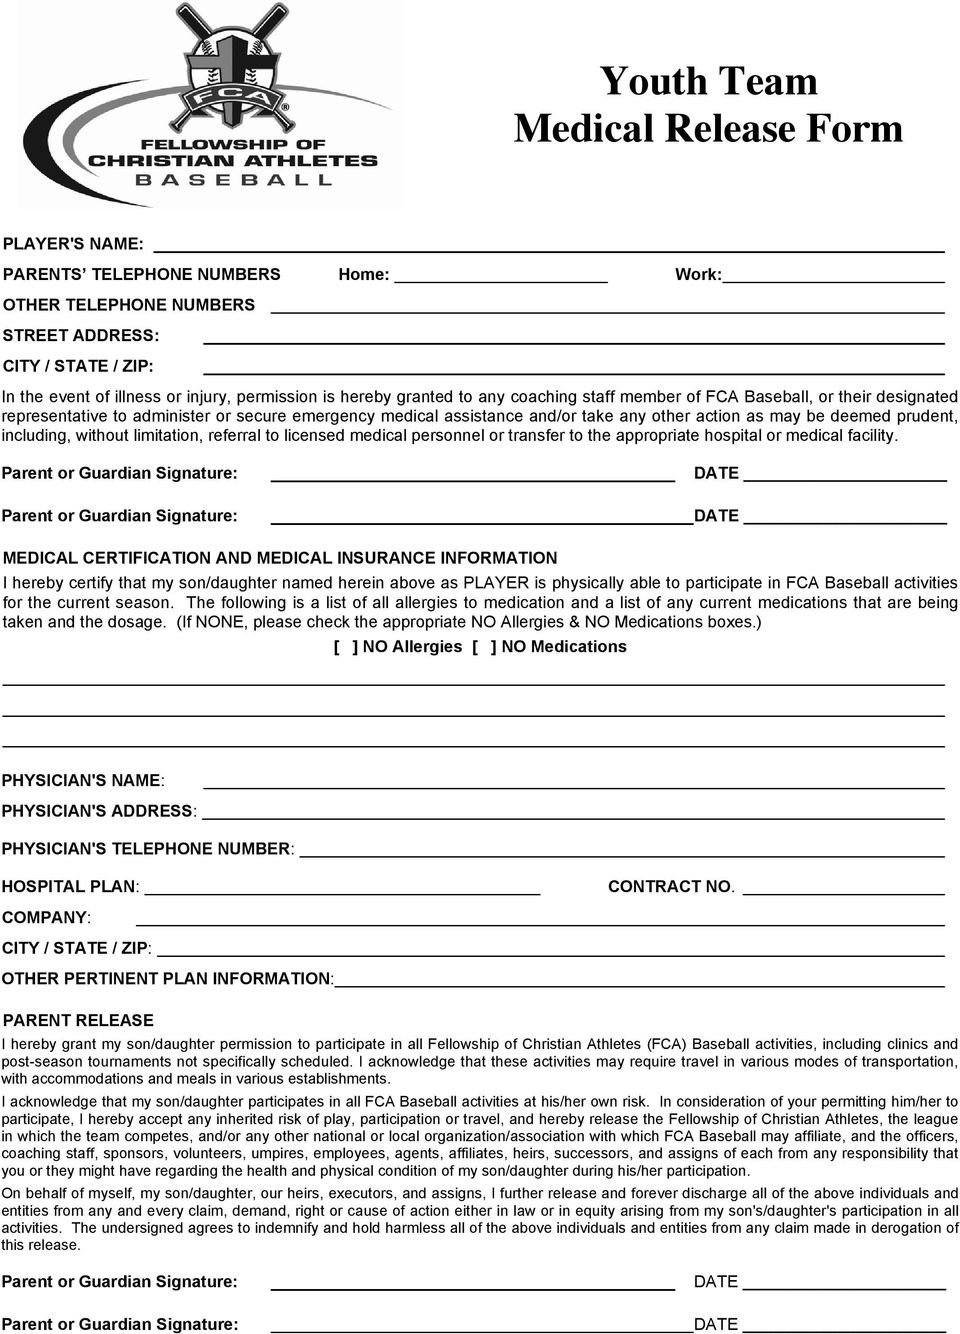 Youth Team Contract Packet - PDF